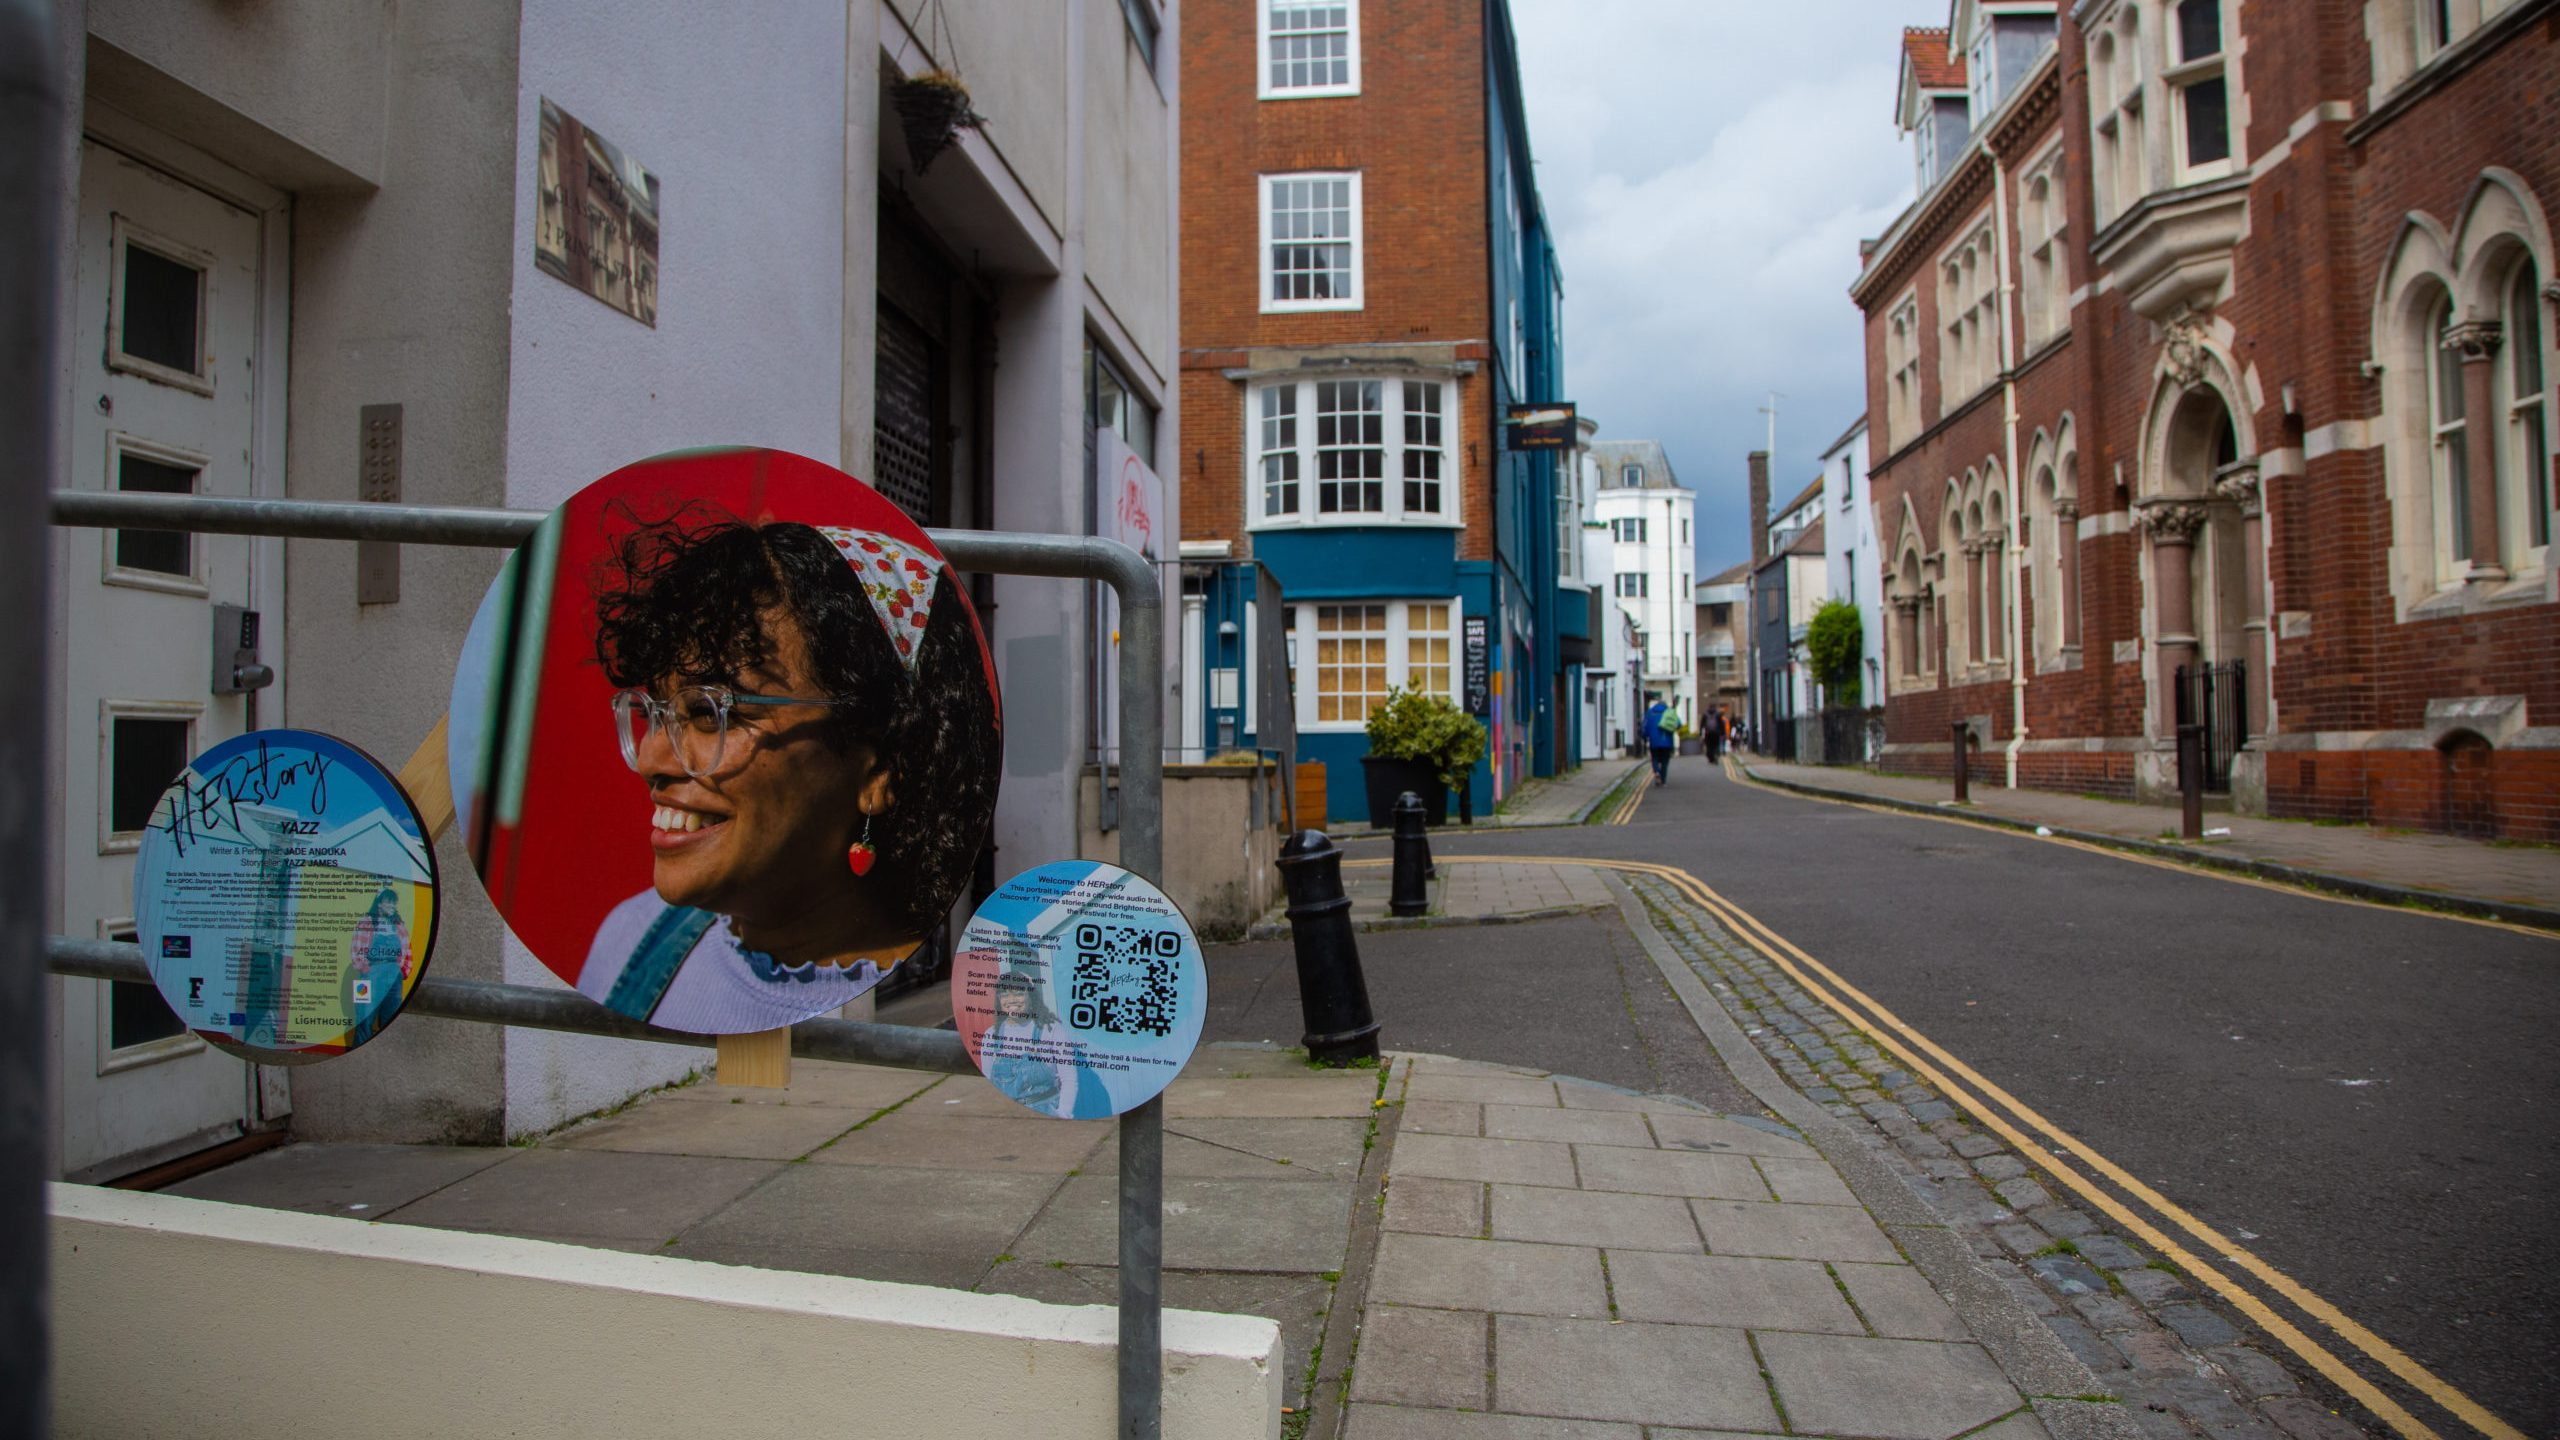 Image shows a circular public artwork in a street. It features a smiling woman on a red background